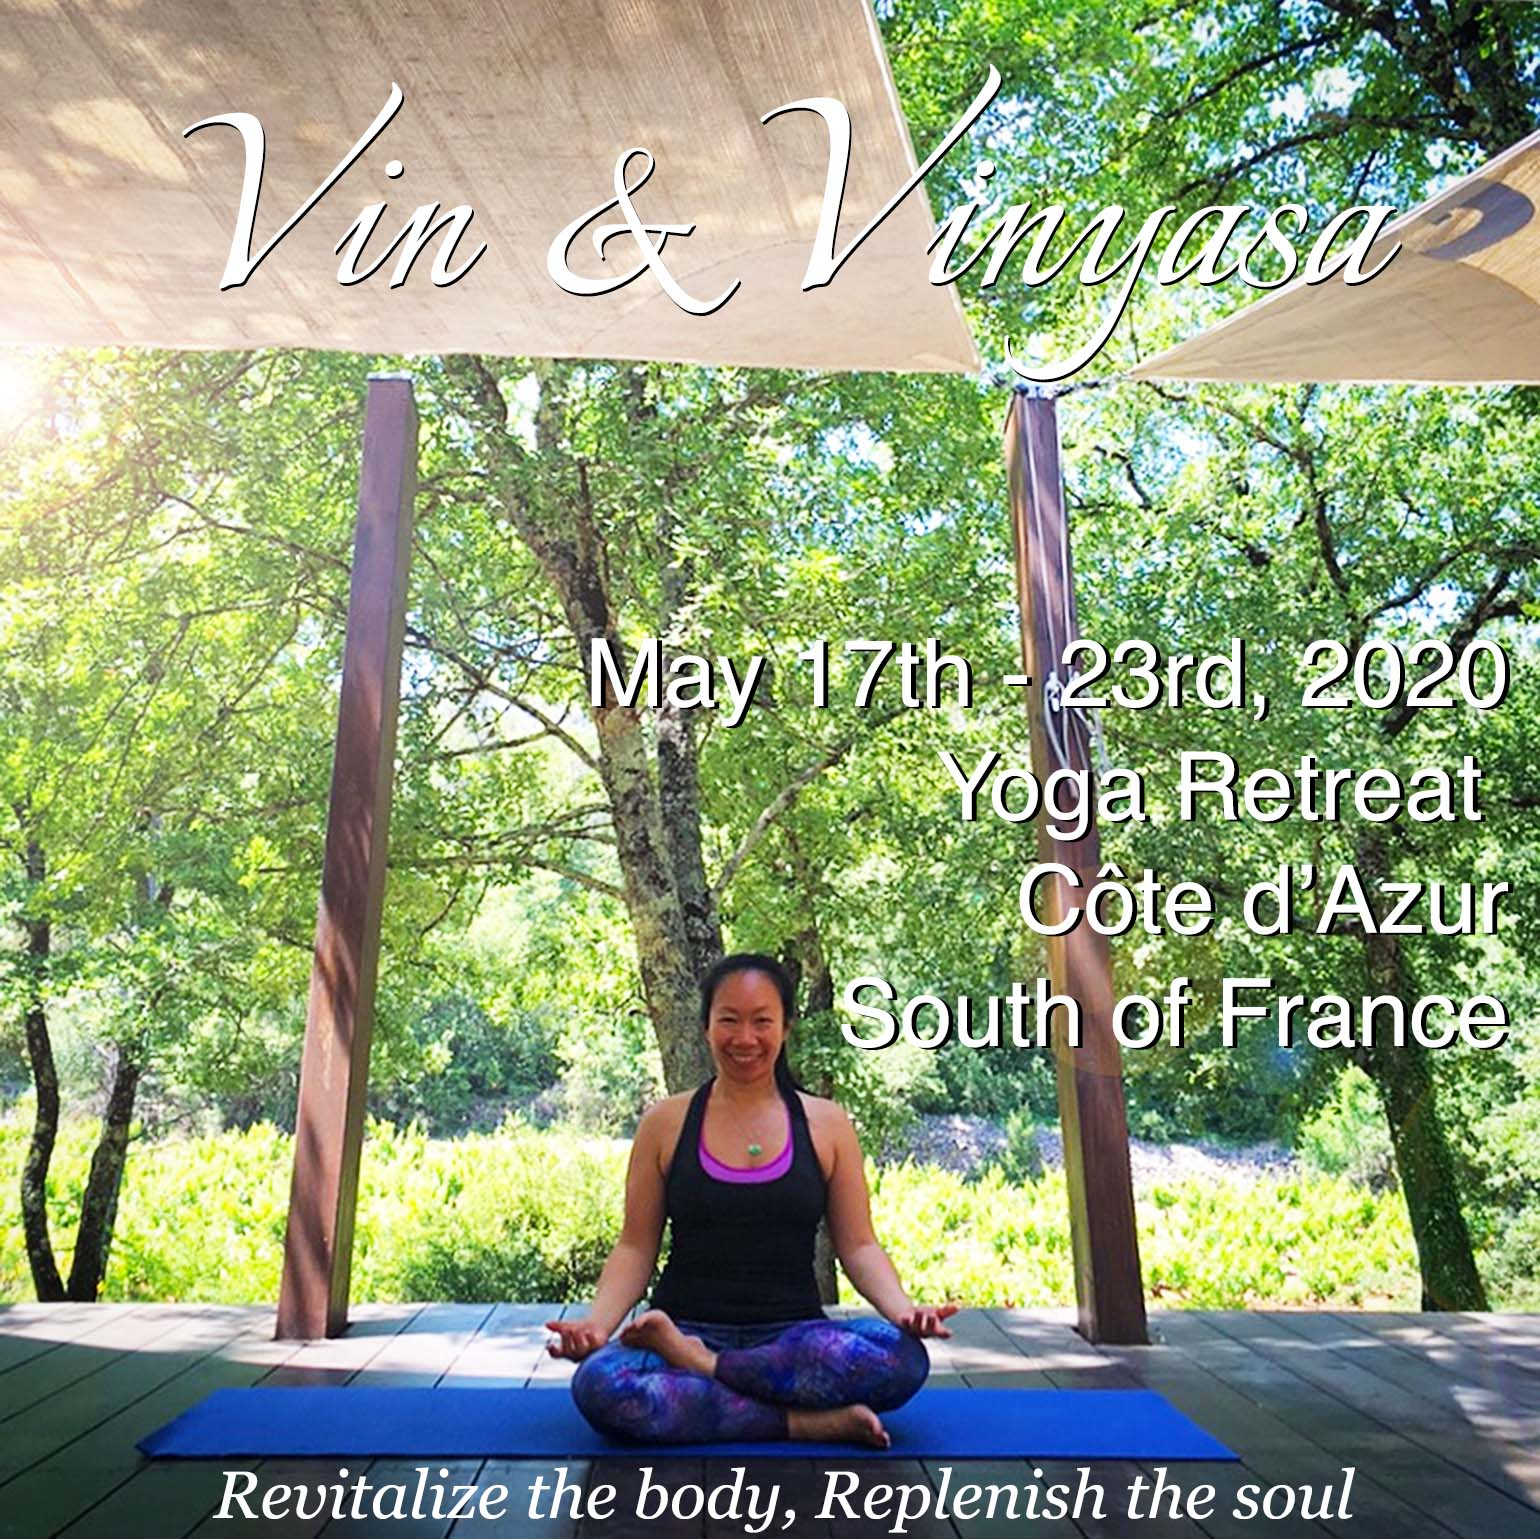 Vin Vinyasa Returns Yoga Retreat In The Cote D Azur South Of France May 17th 23rd 2020 Save The Date